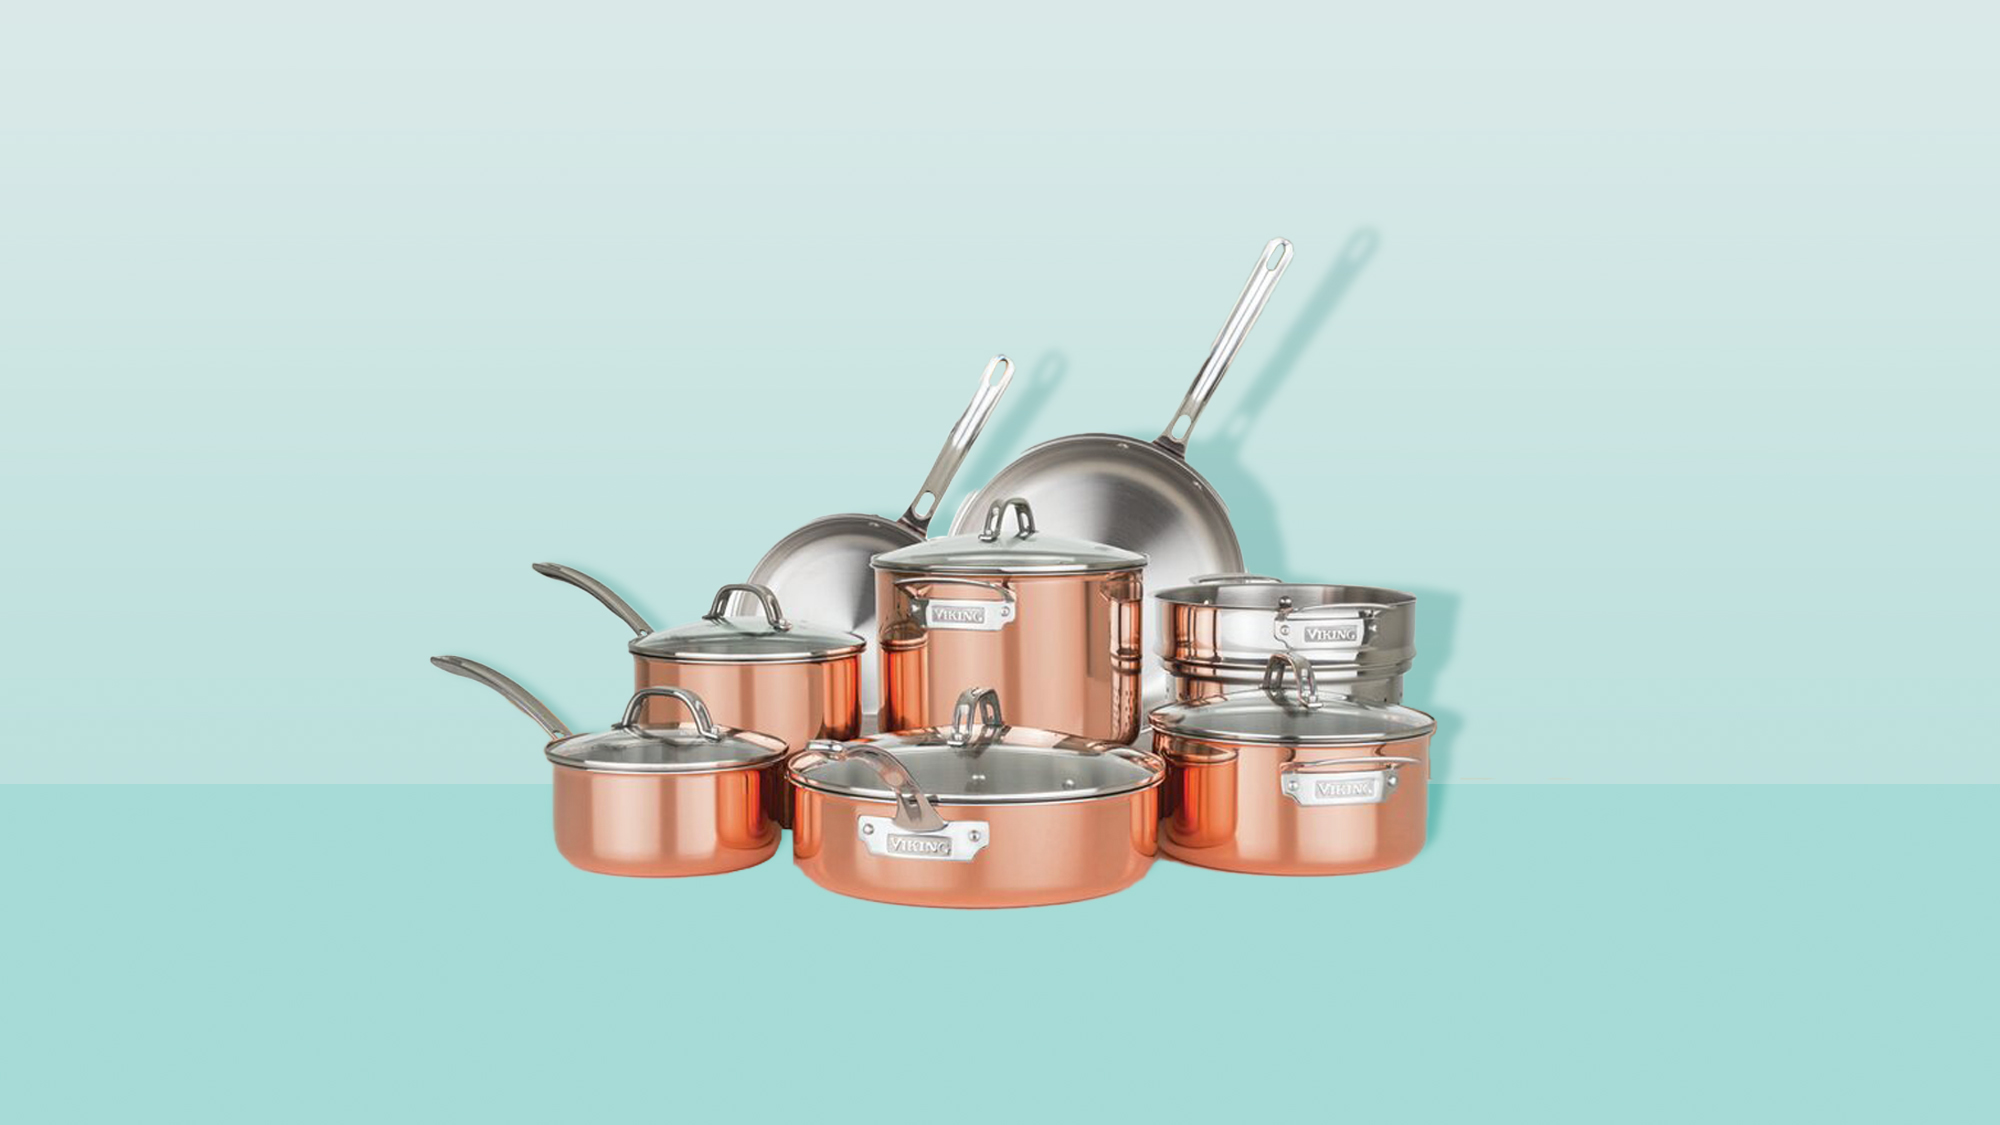 Viking 3-ply Copper Clad 13pc Cookware Set W/ Vented Glass Lids